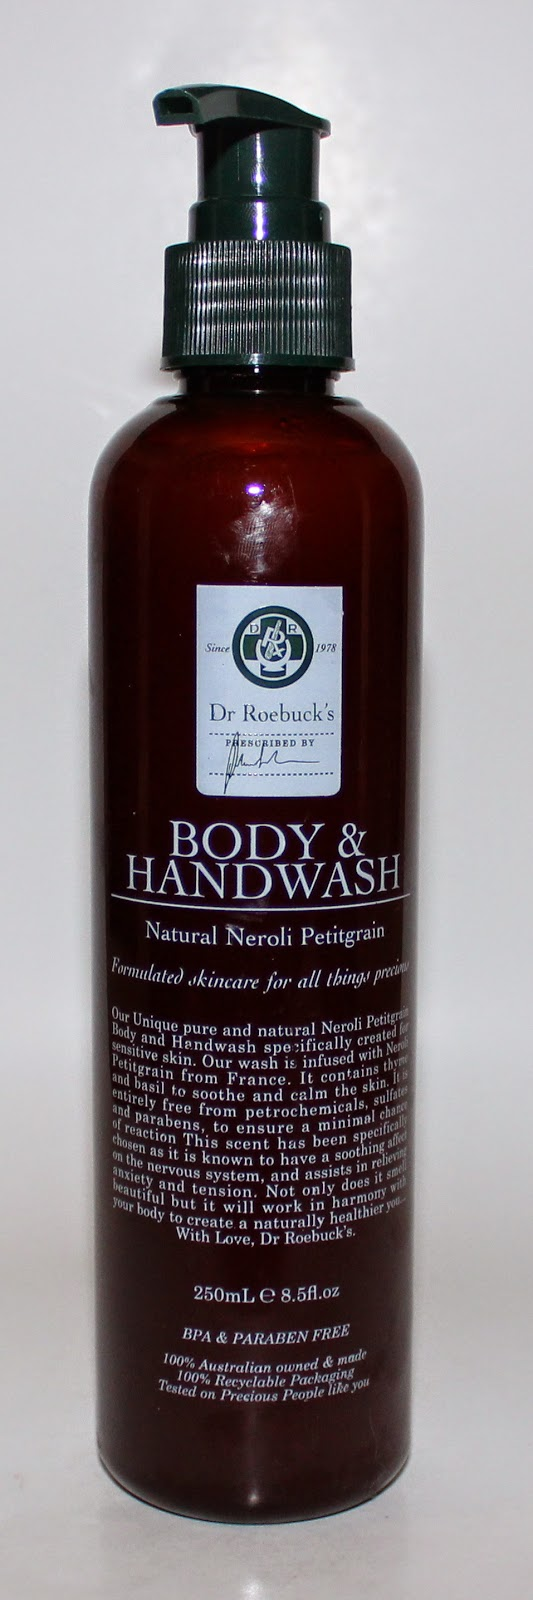 Dr Roebucks Body & Handwash